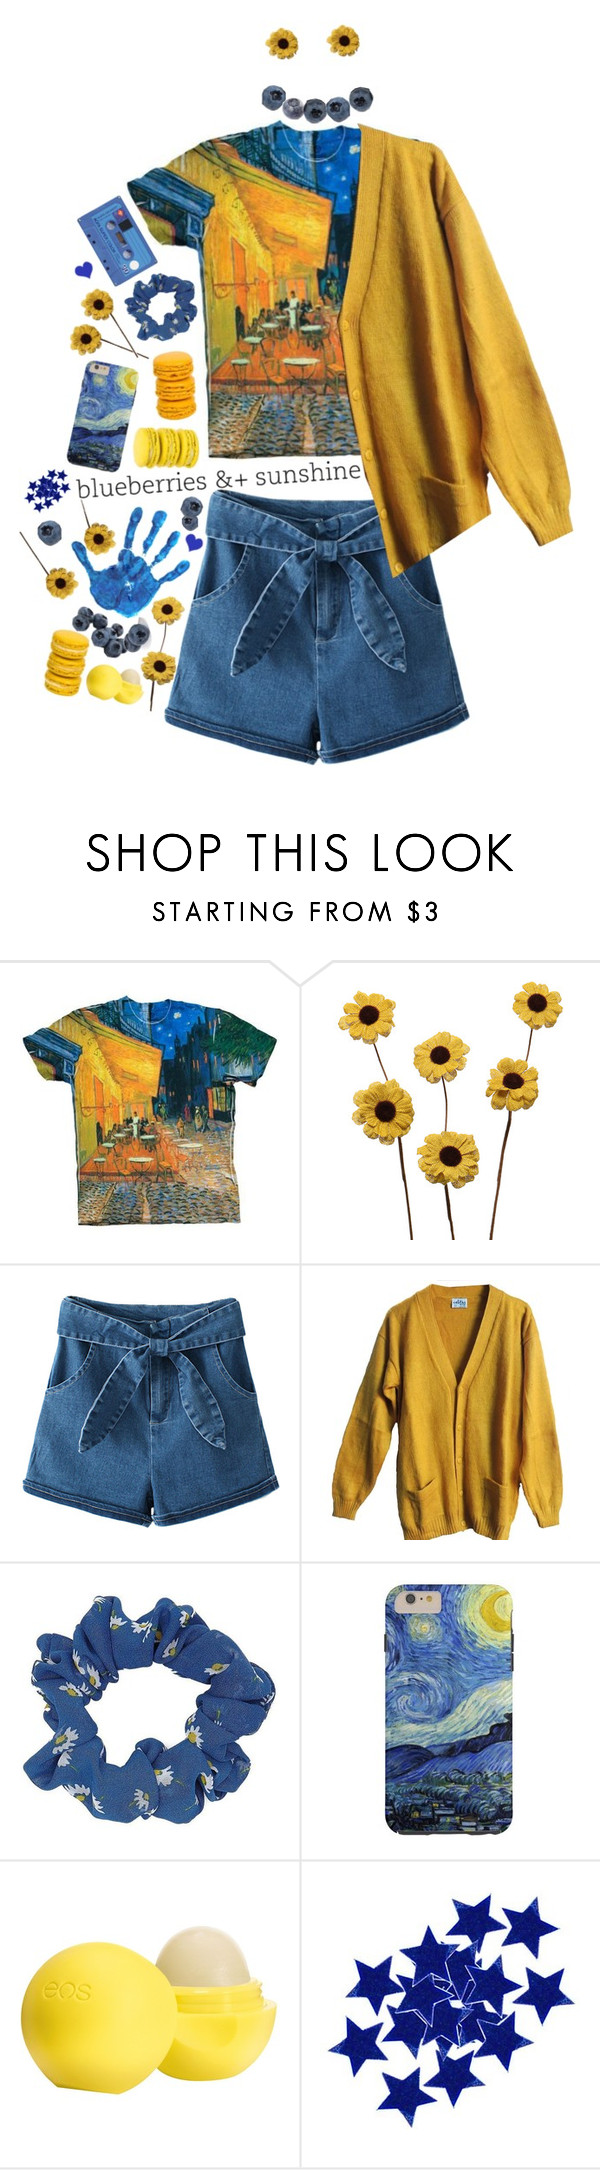 """""""For Once In Your Life, Please Be Cool."""" by wowsocks ❤ liked on Polyvore featuring мода, Eos, women's clothing, women, female, woman, misses и juniors"""